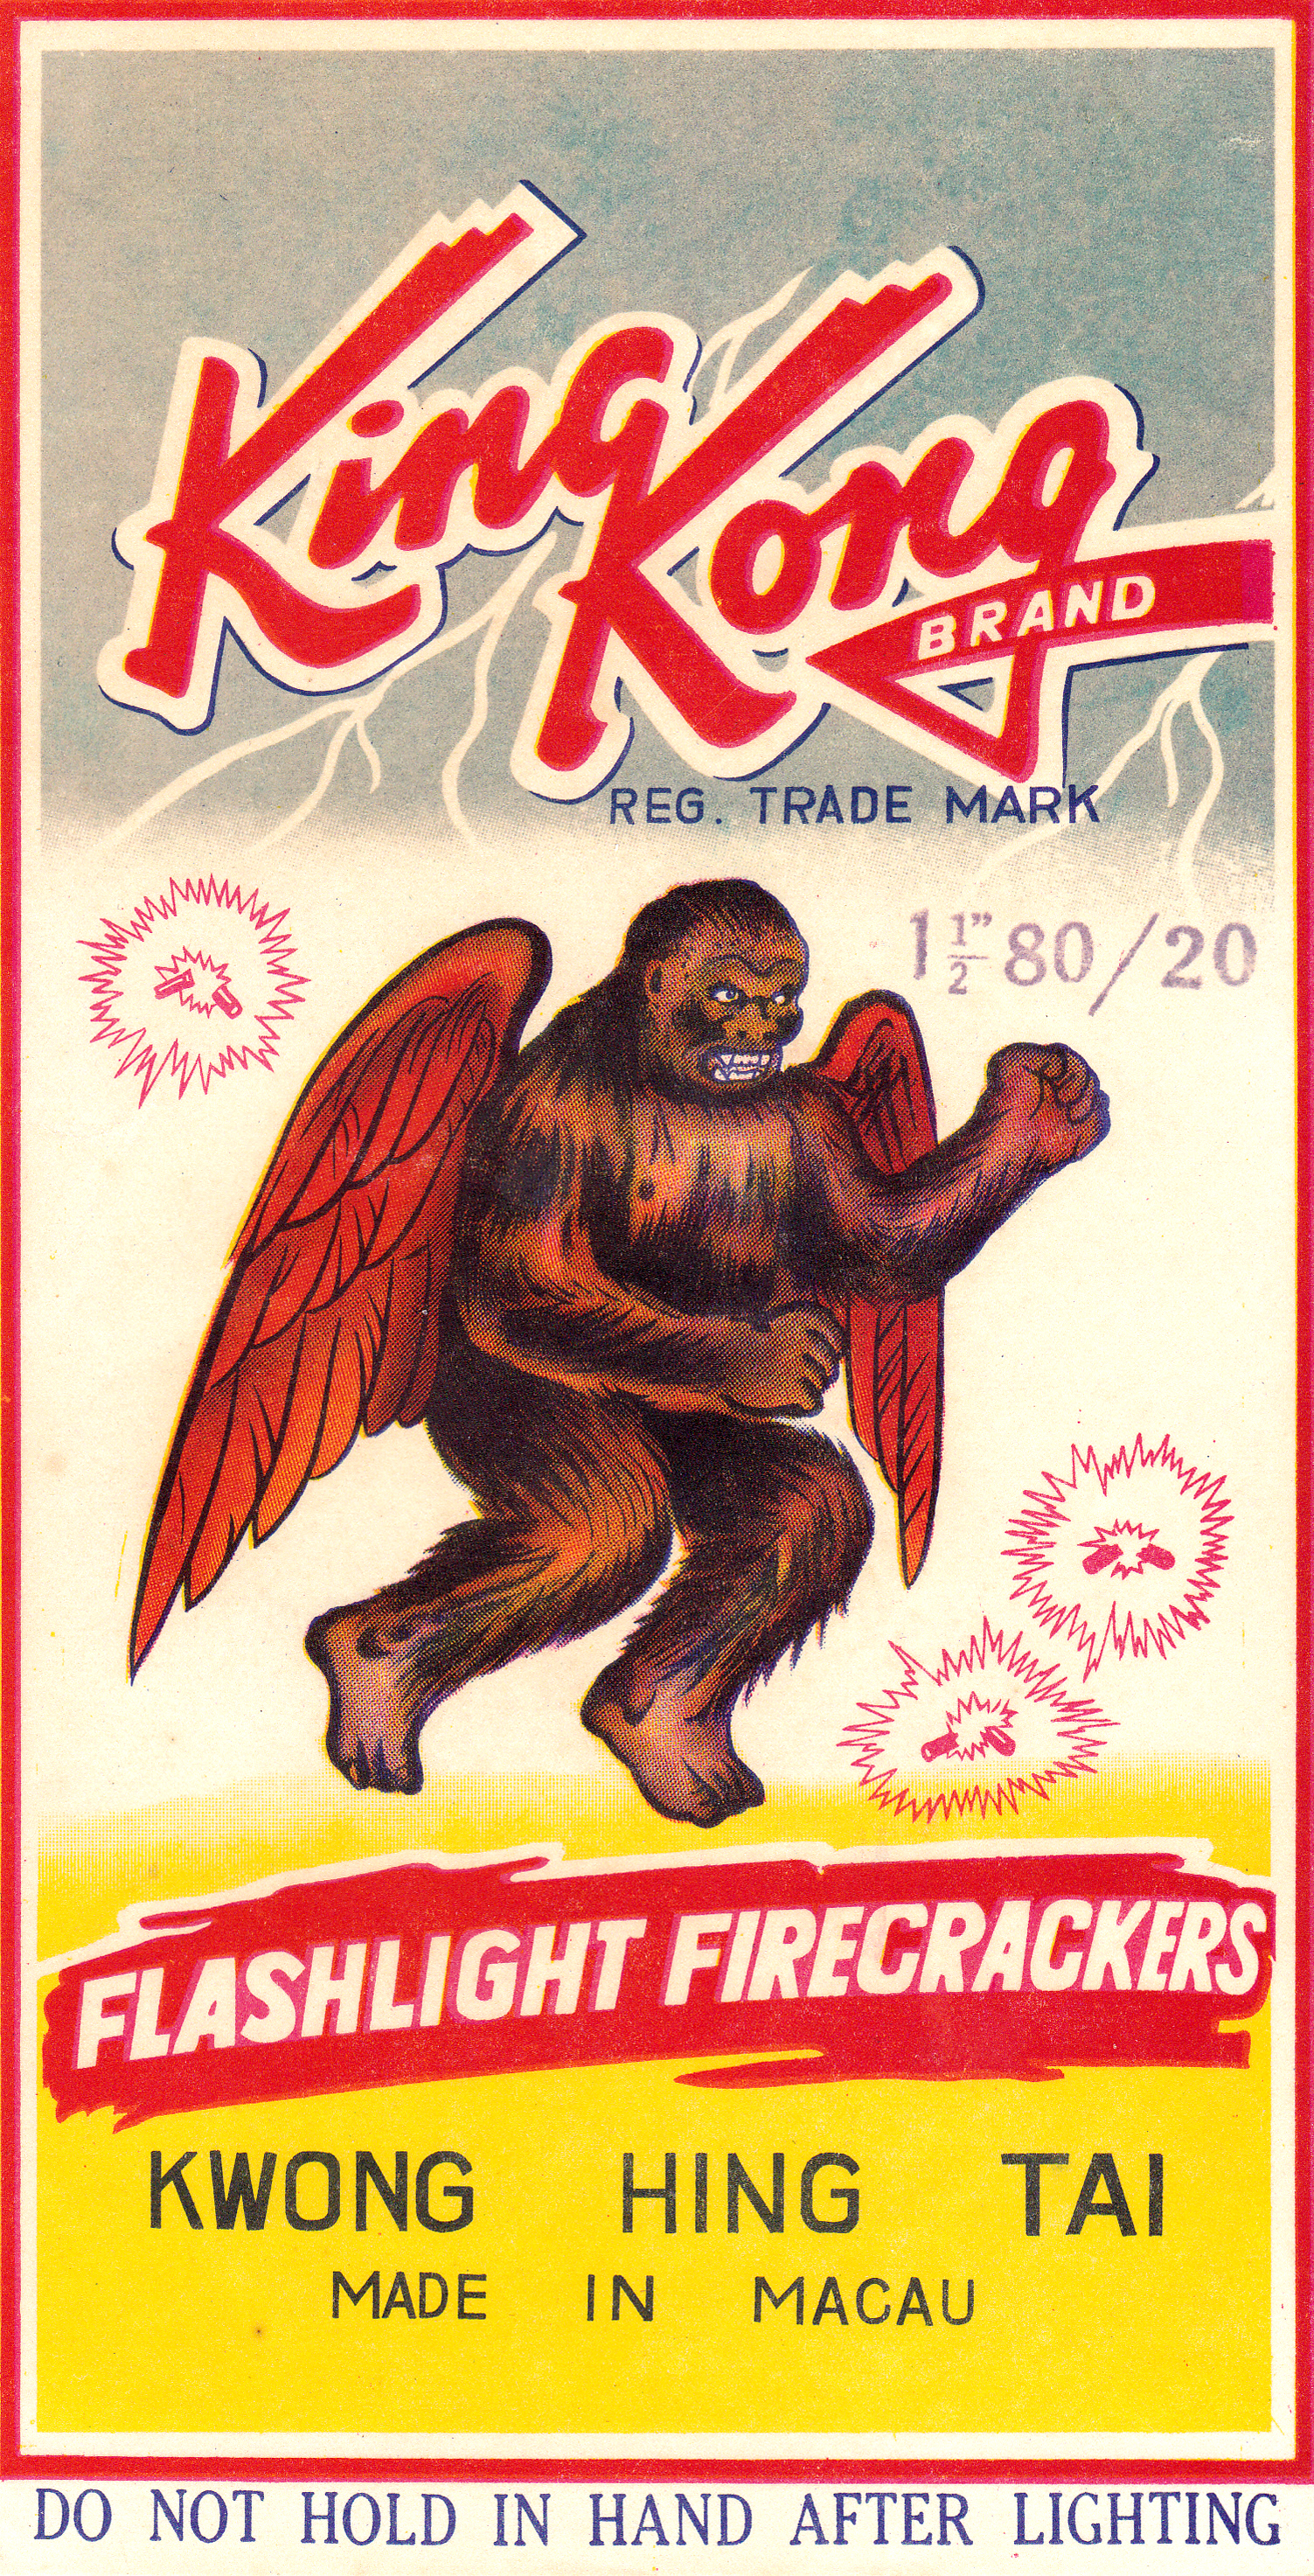 King Kong - Firecracker Brick Label